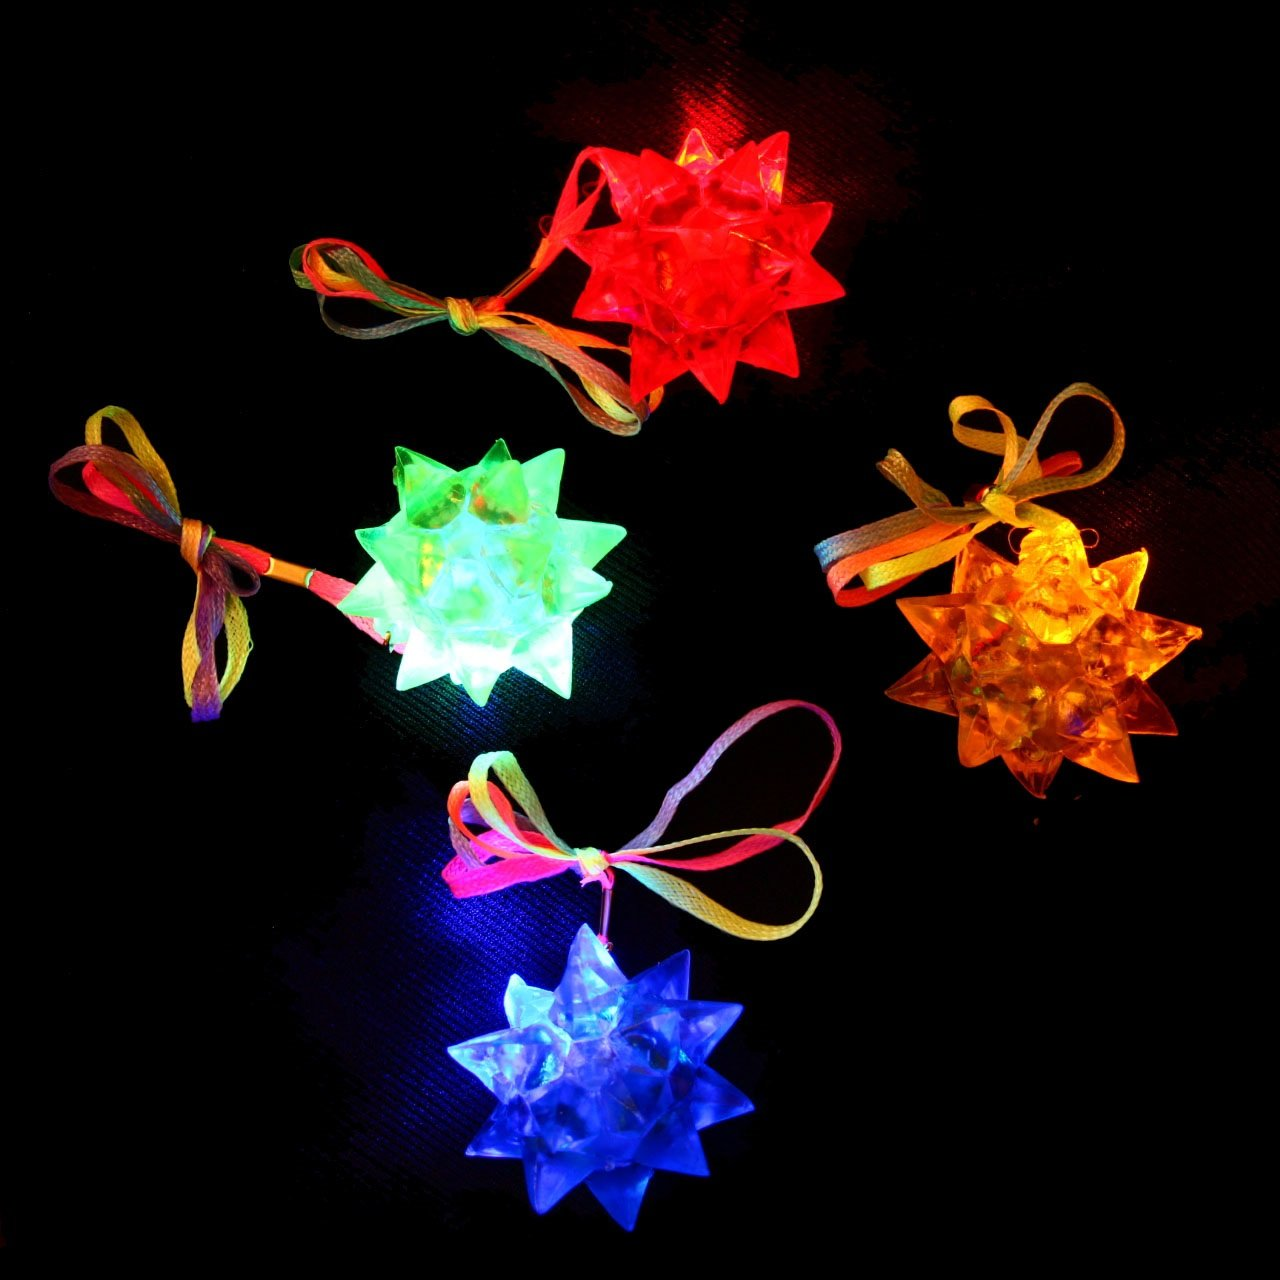 dazzling toys Necklaces LED Blinking Crystal Star Necklace Glow Toy Flash Lights,Red Blue Yellow,Set of 24 . Green